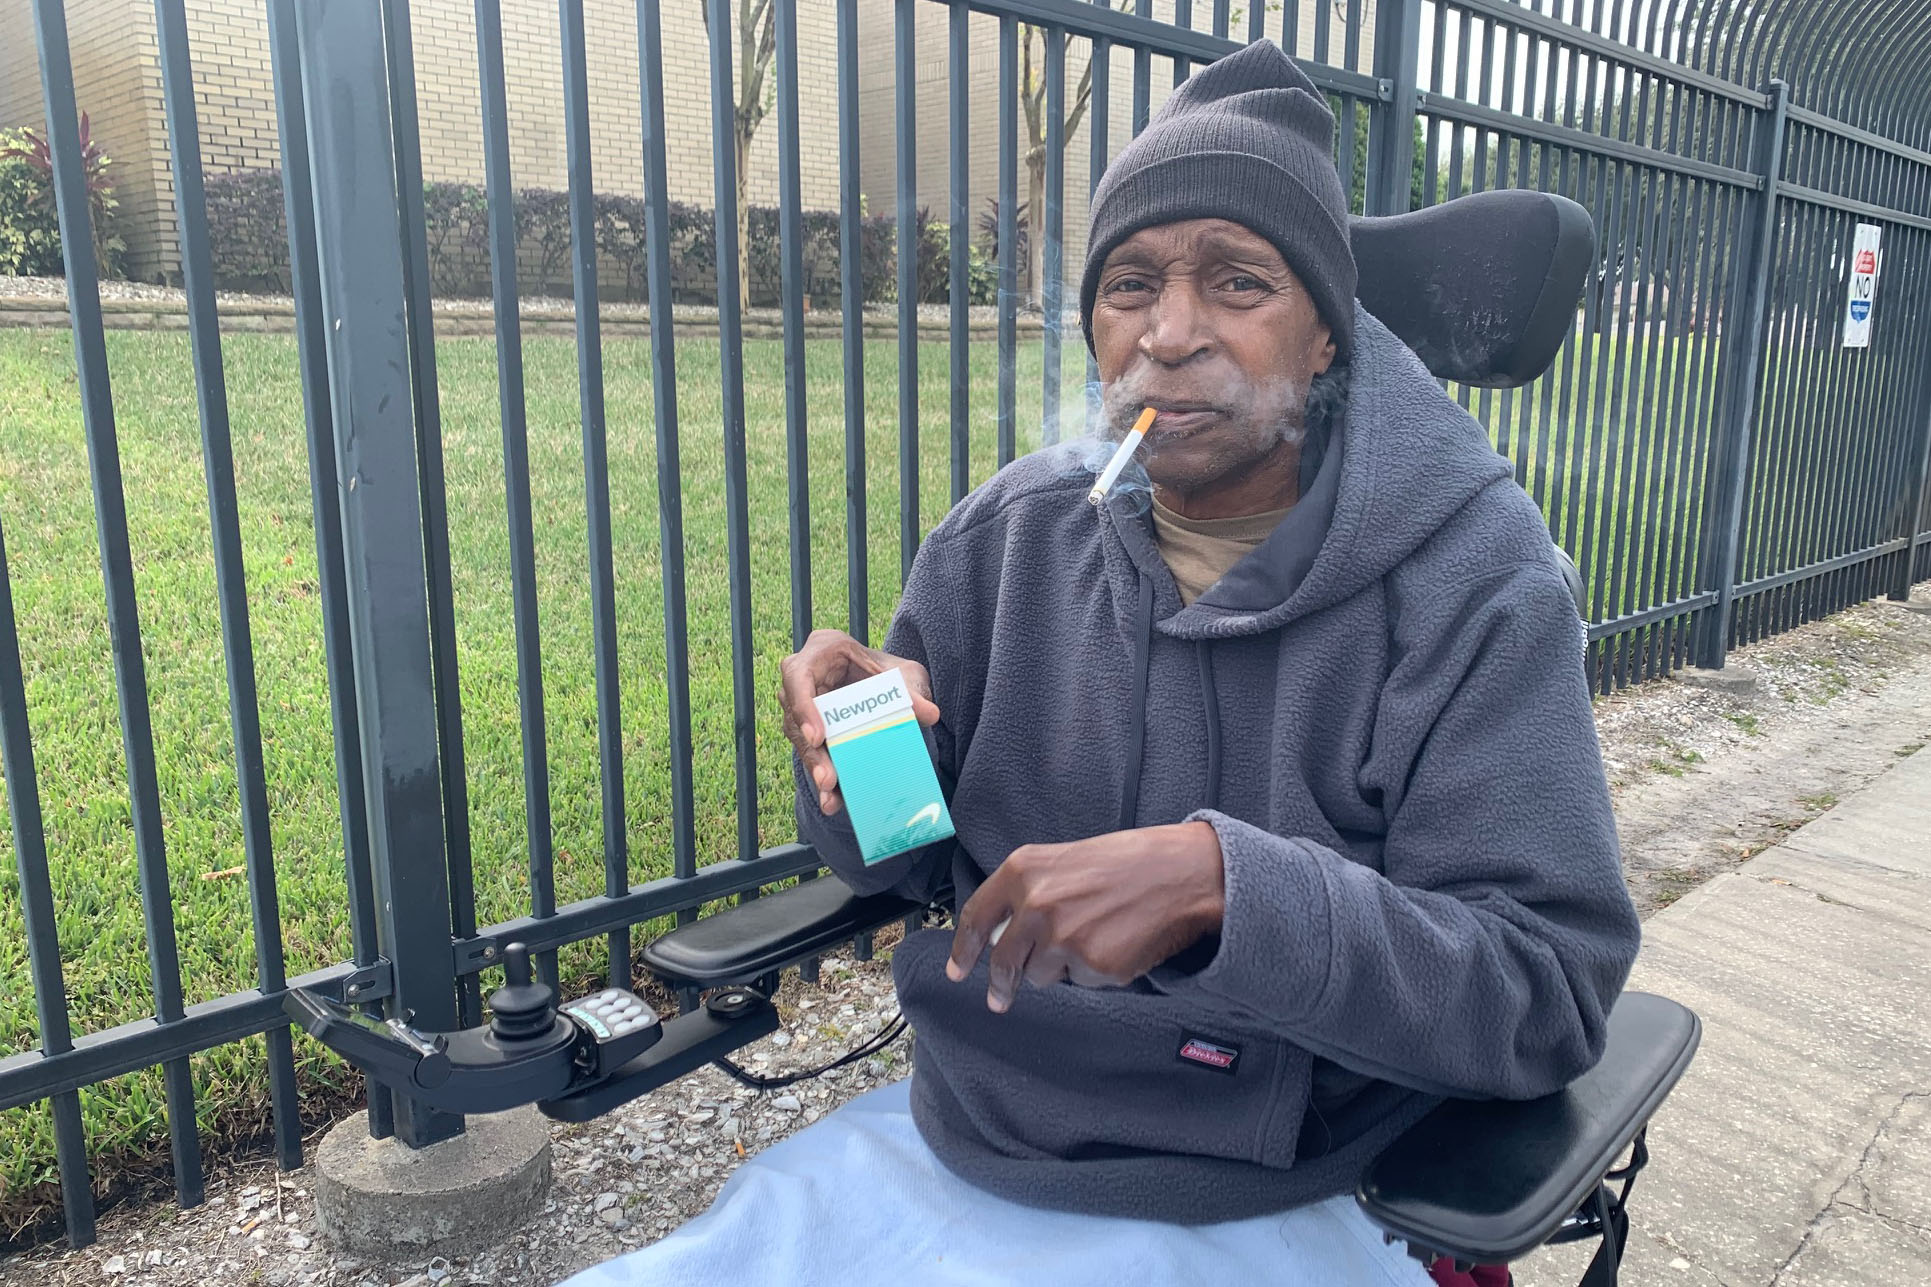 Caption: Air Force veteran Ronald West, 70, said he leaves his hospital room several times a day to smoke outside the Tampa VA property., Credit: Stephanie Colombini/American Homefront